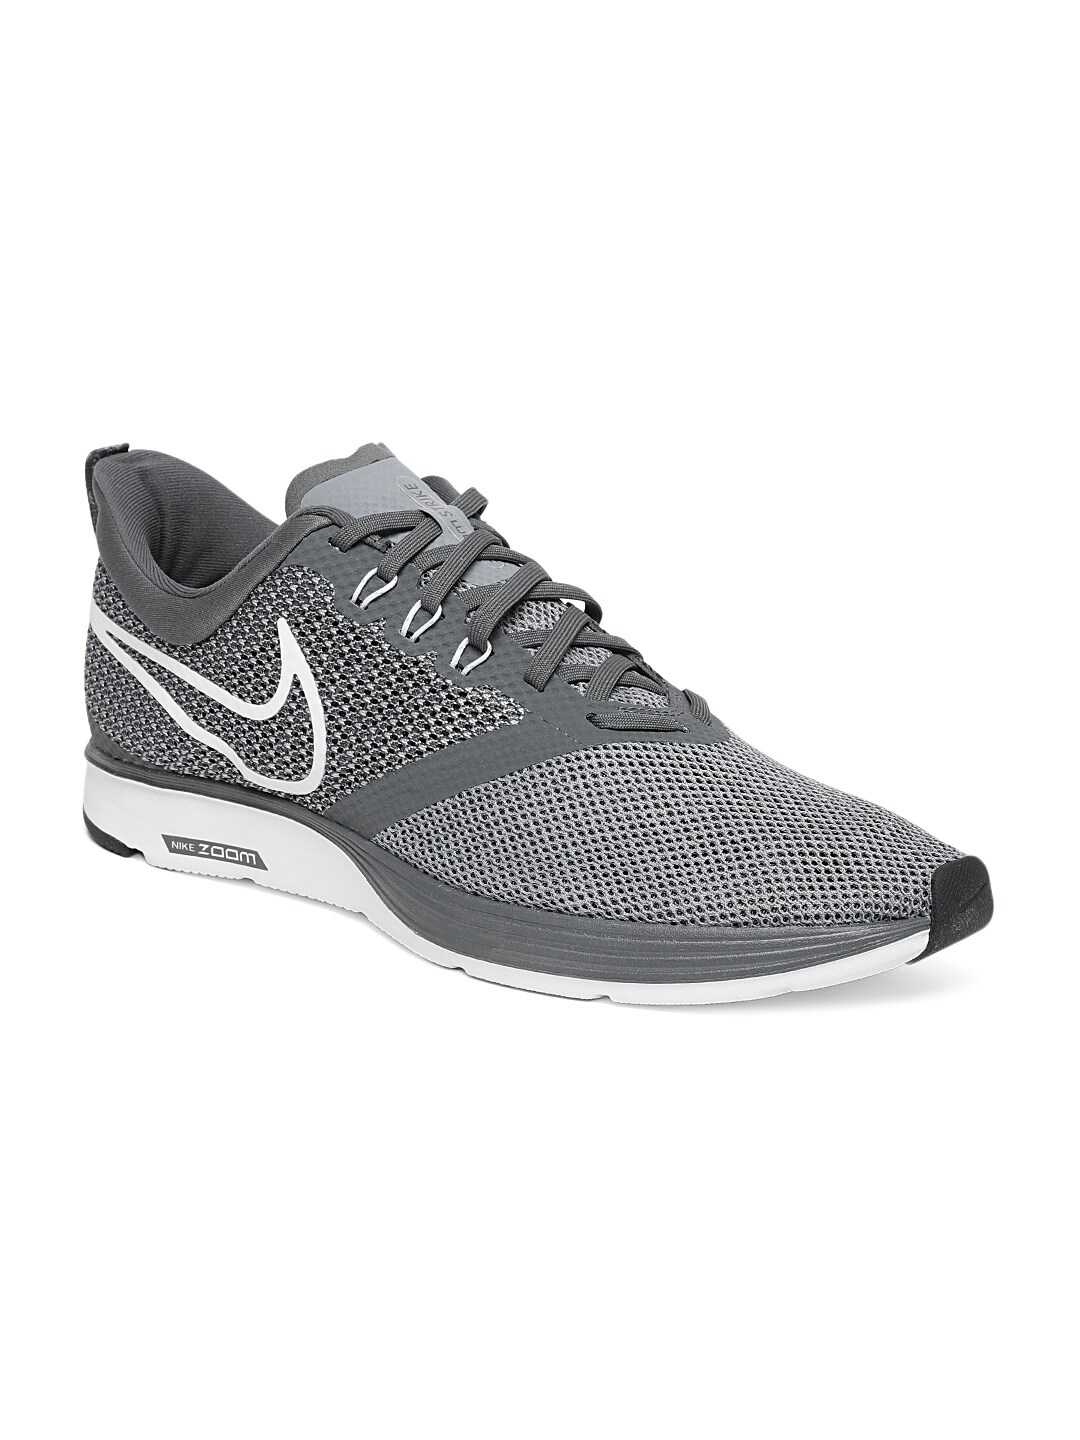 23b1e0475f7 Nike Zoom Shoes - Buy Nike Zoom Shoes online in India